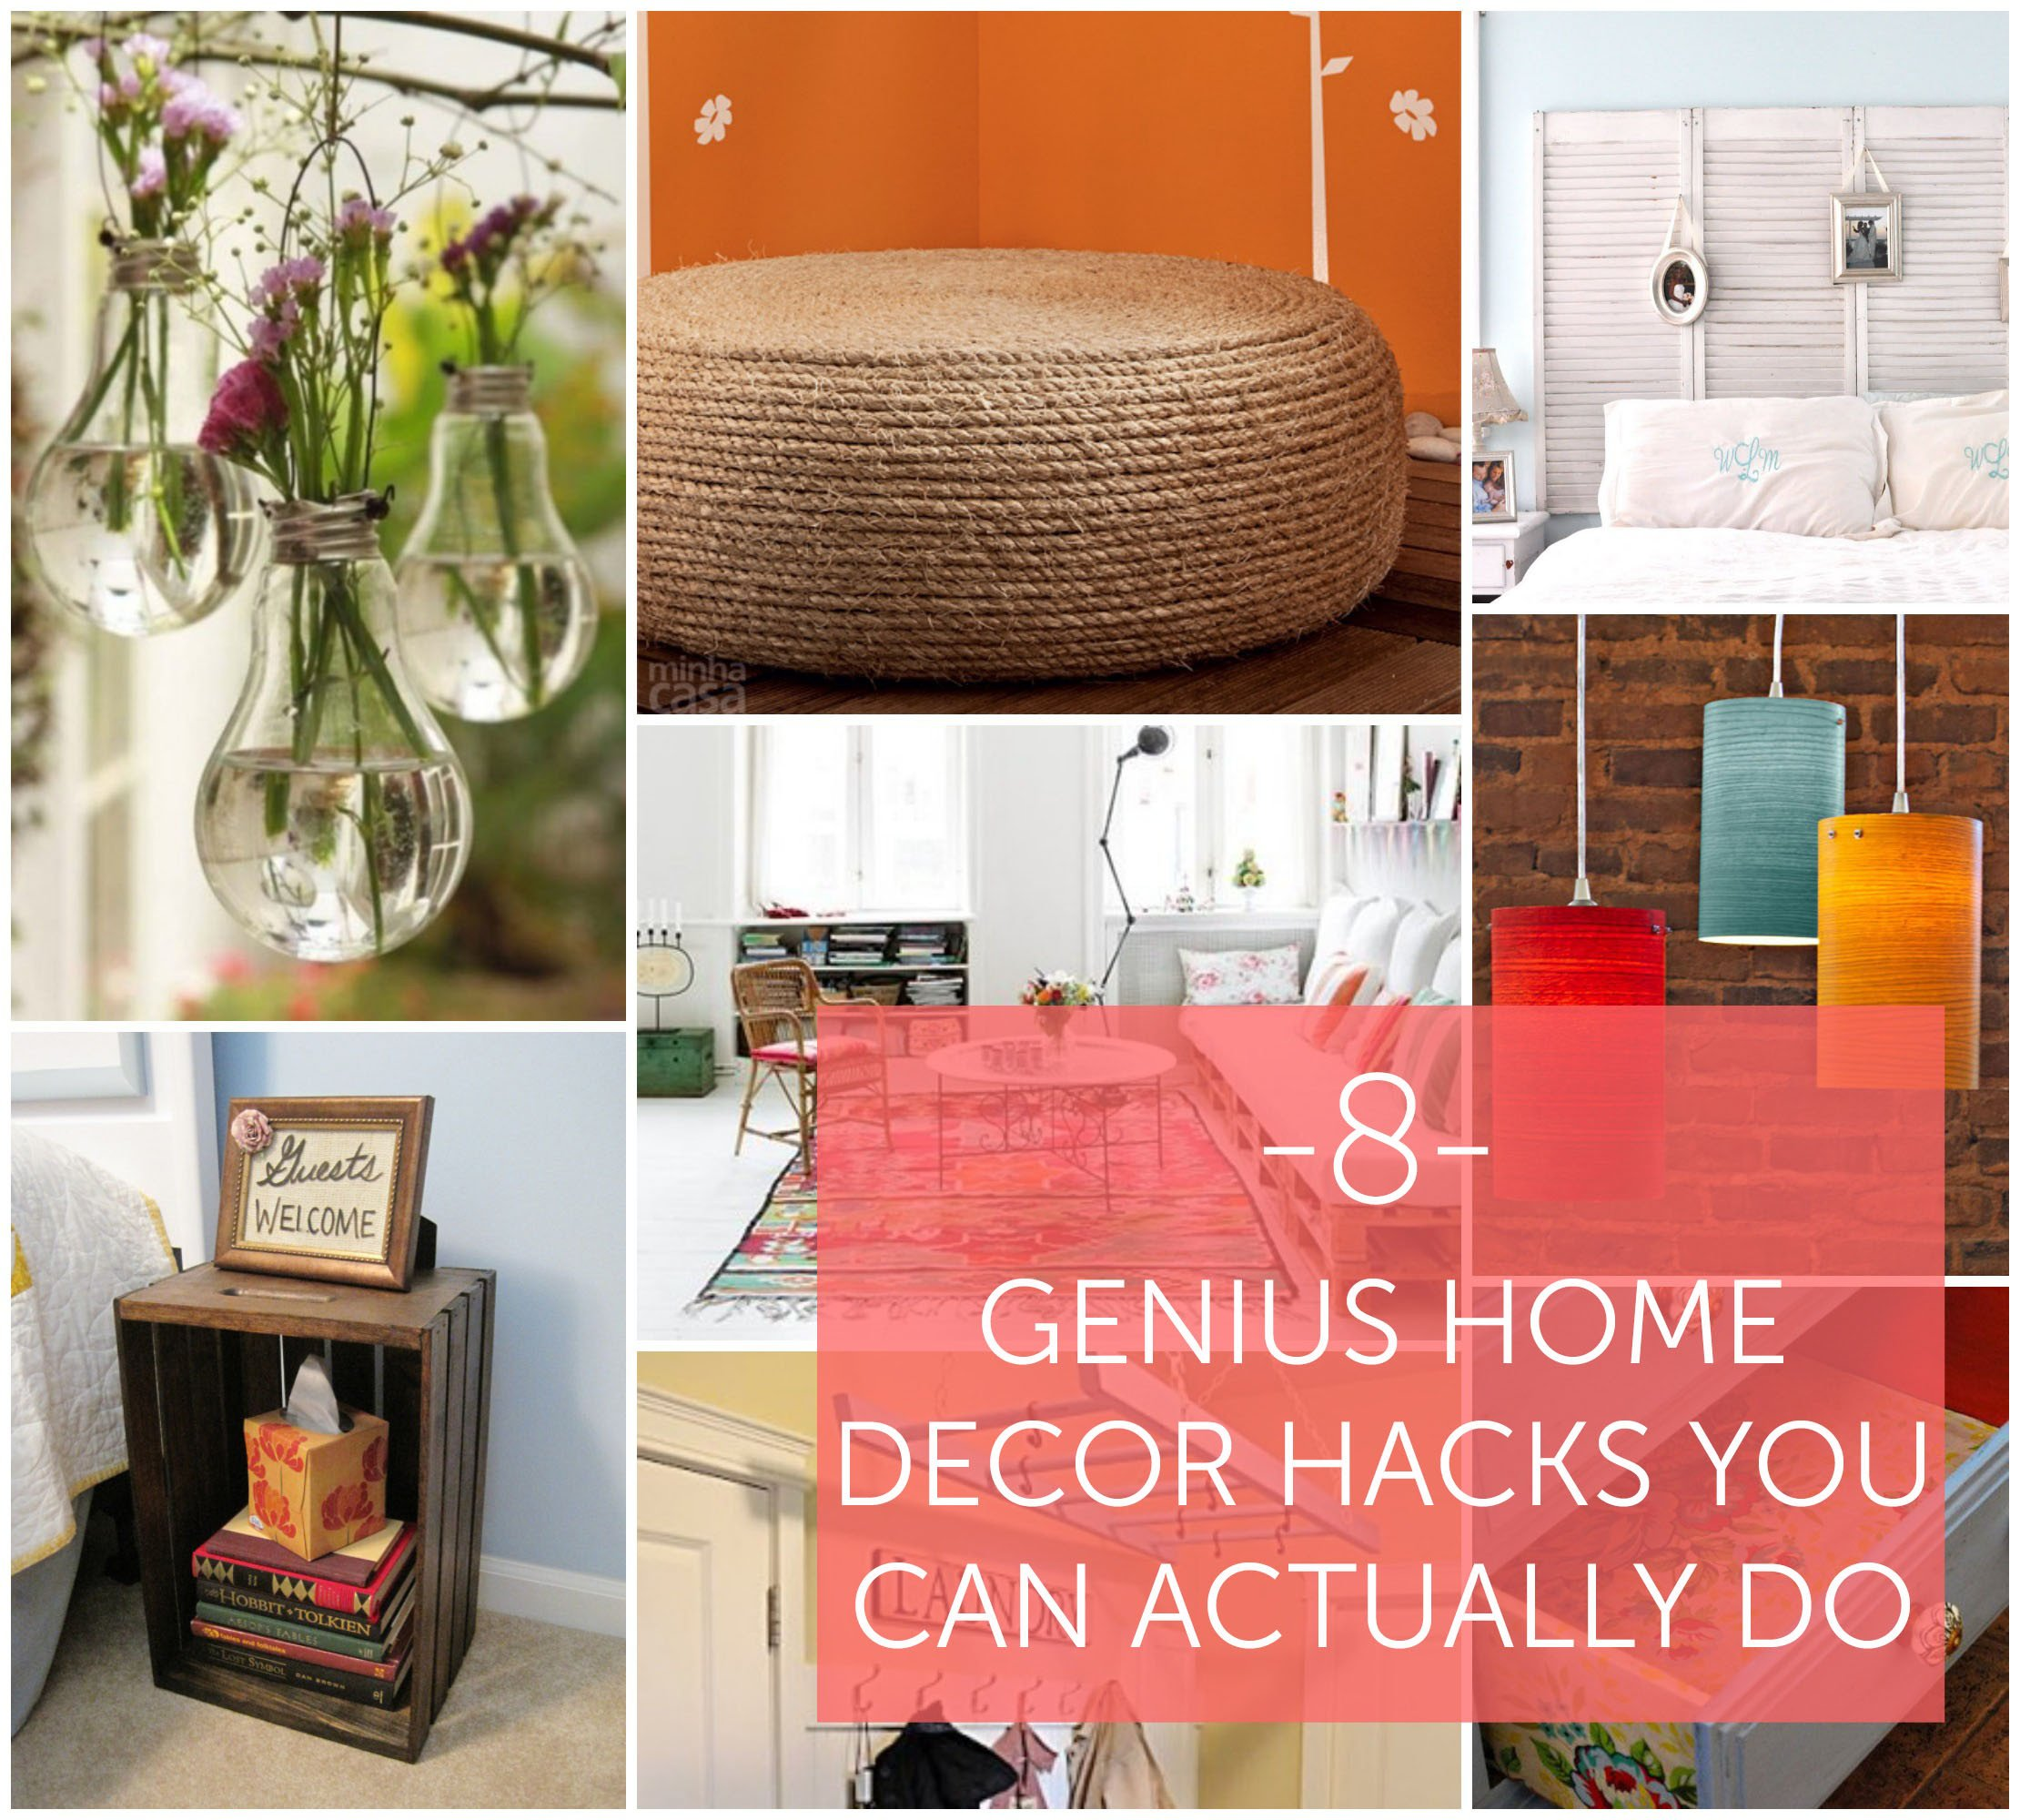 Diy Websites for Home Decor Elegant 8 Genius Home Decor Hacks You Can Actually Do